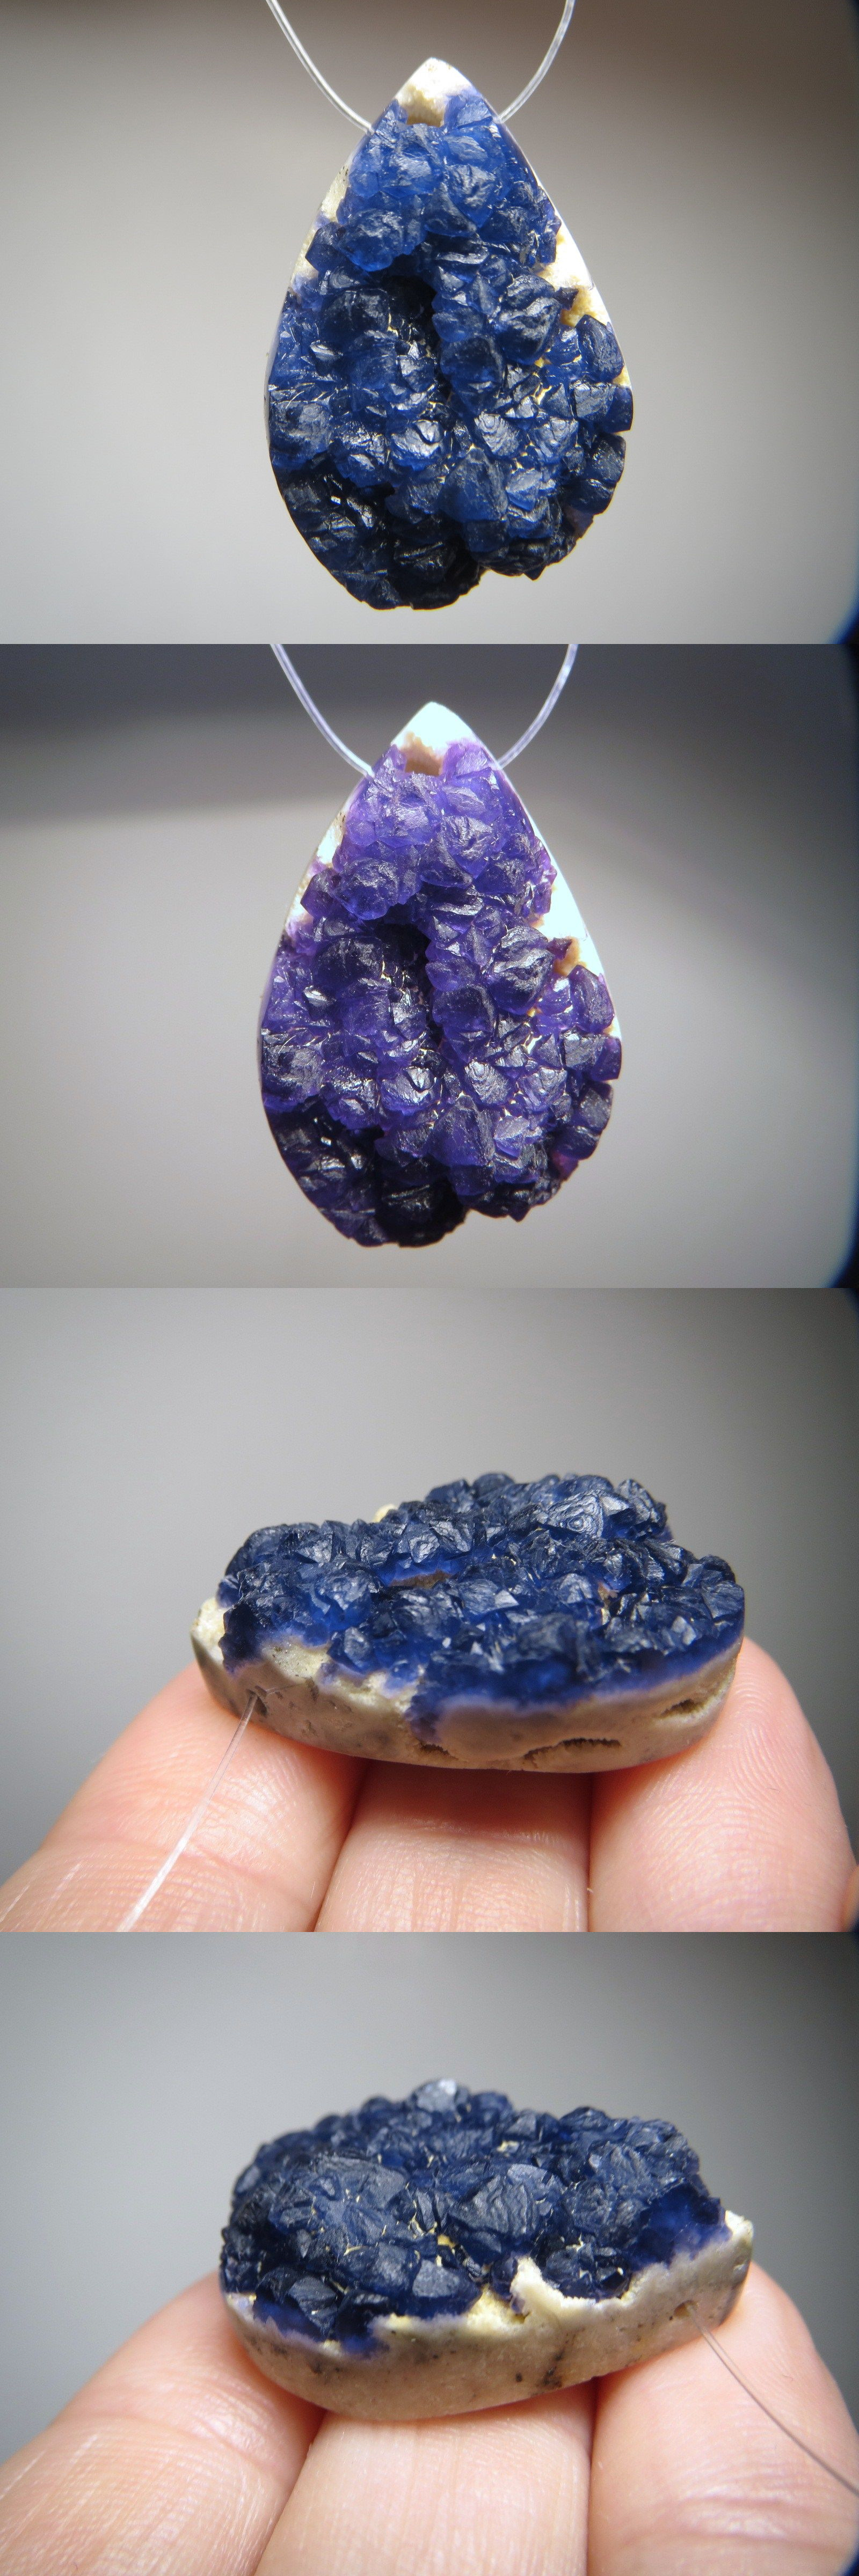 calming purple challenge gemstone color photography amethyst crazymumzysa sunday and crystal meditative